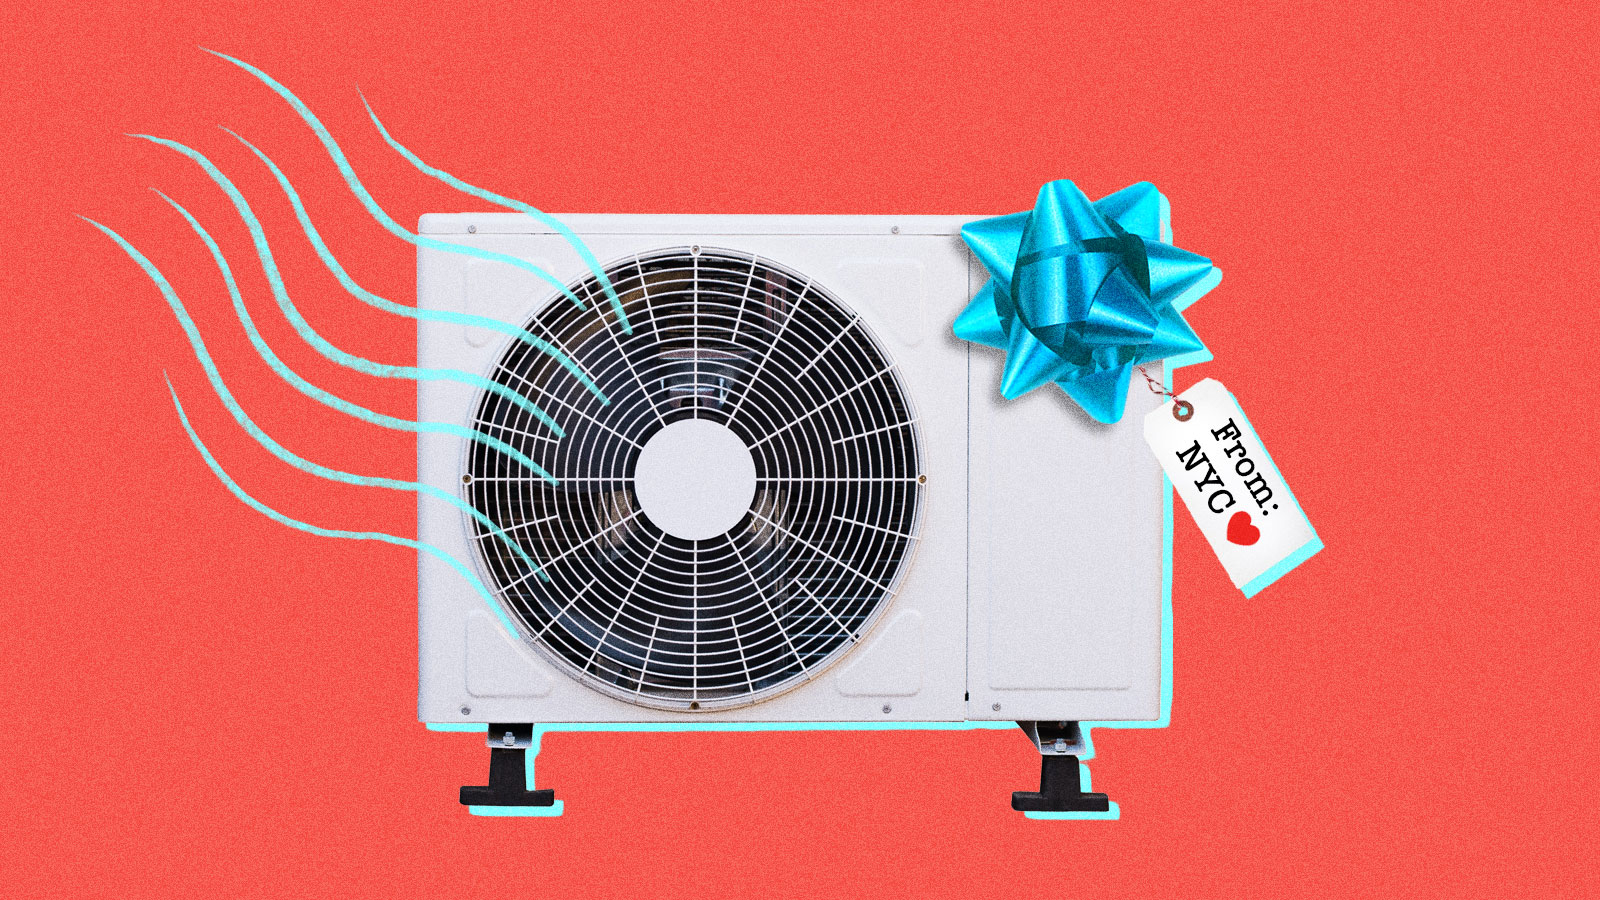 An air conditioning unit with a gift bow and a tag saying